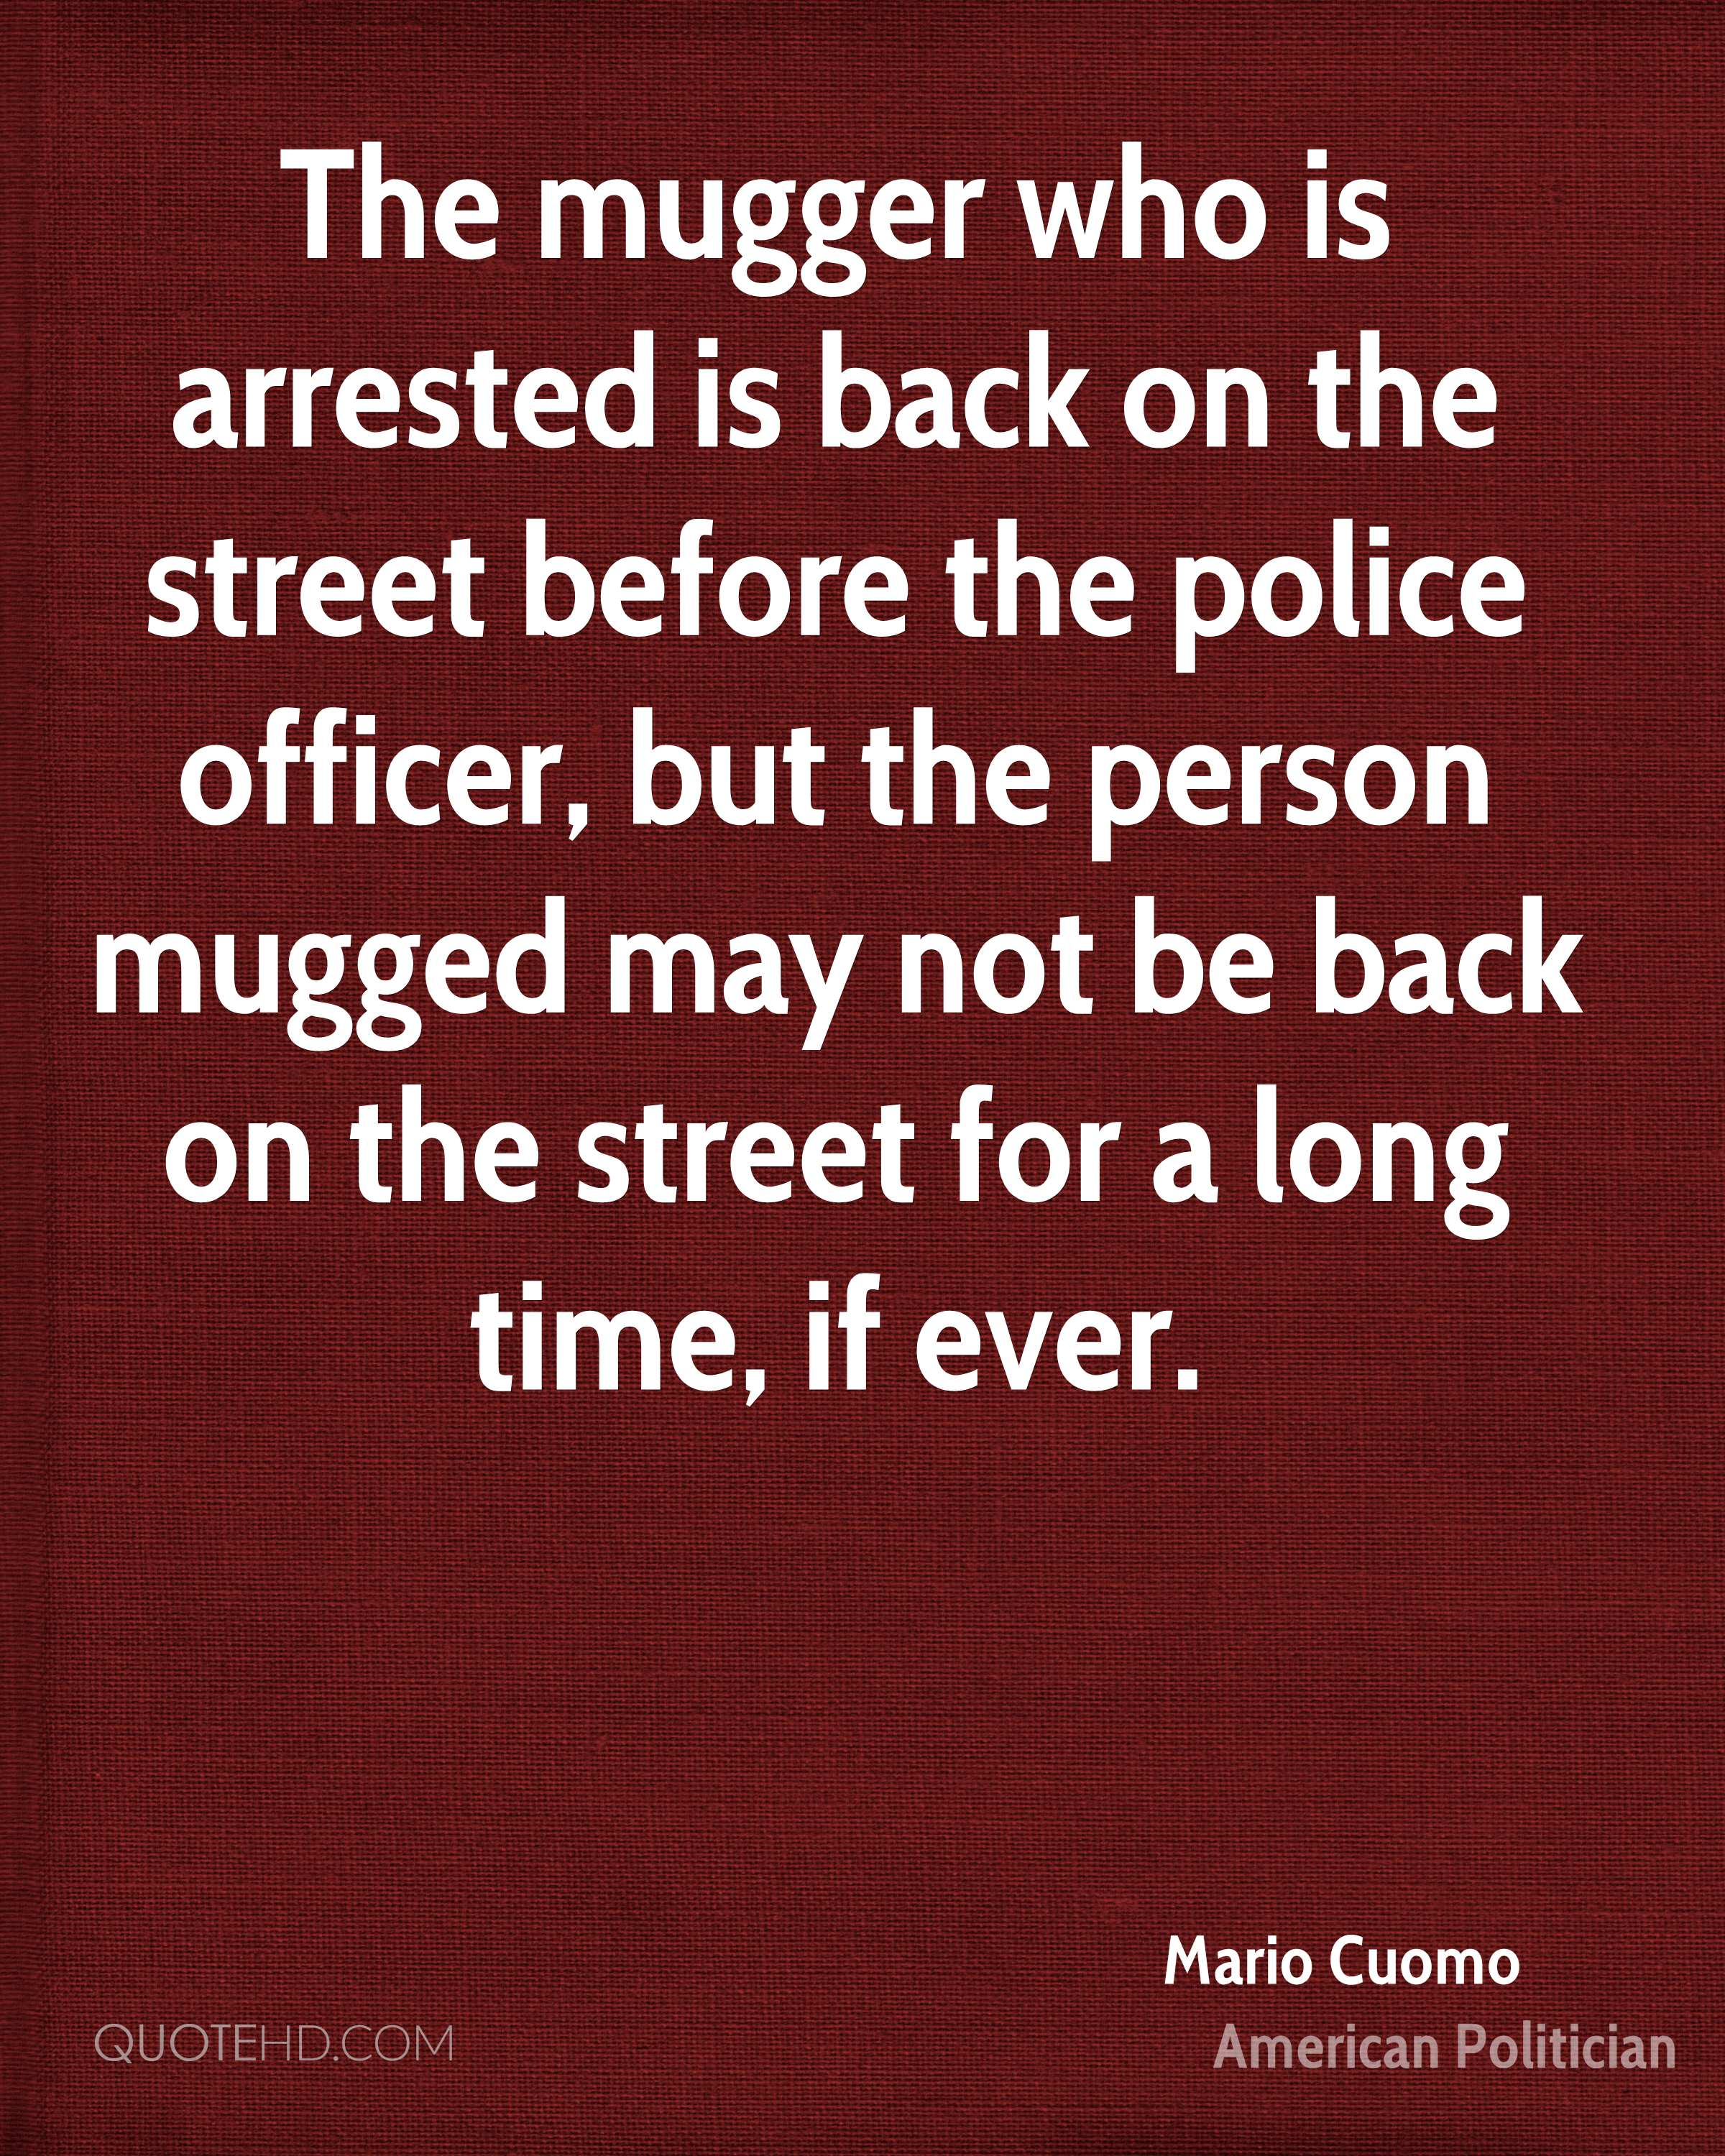 The mugger who is arrested is back on the street before the police officer, but the person mugged may not be back on the street for a long time, if ever.